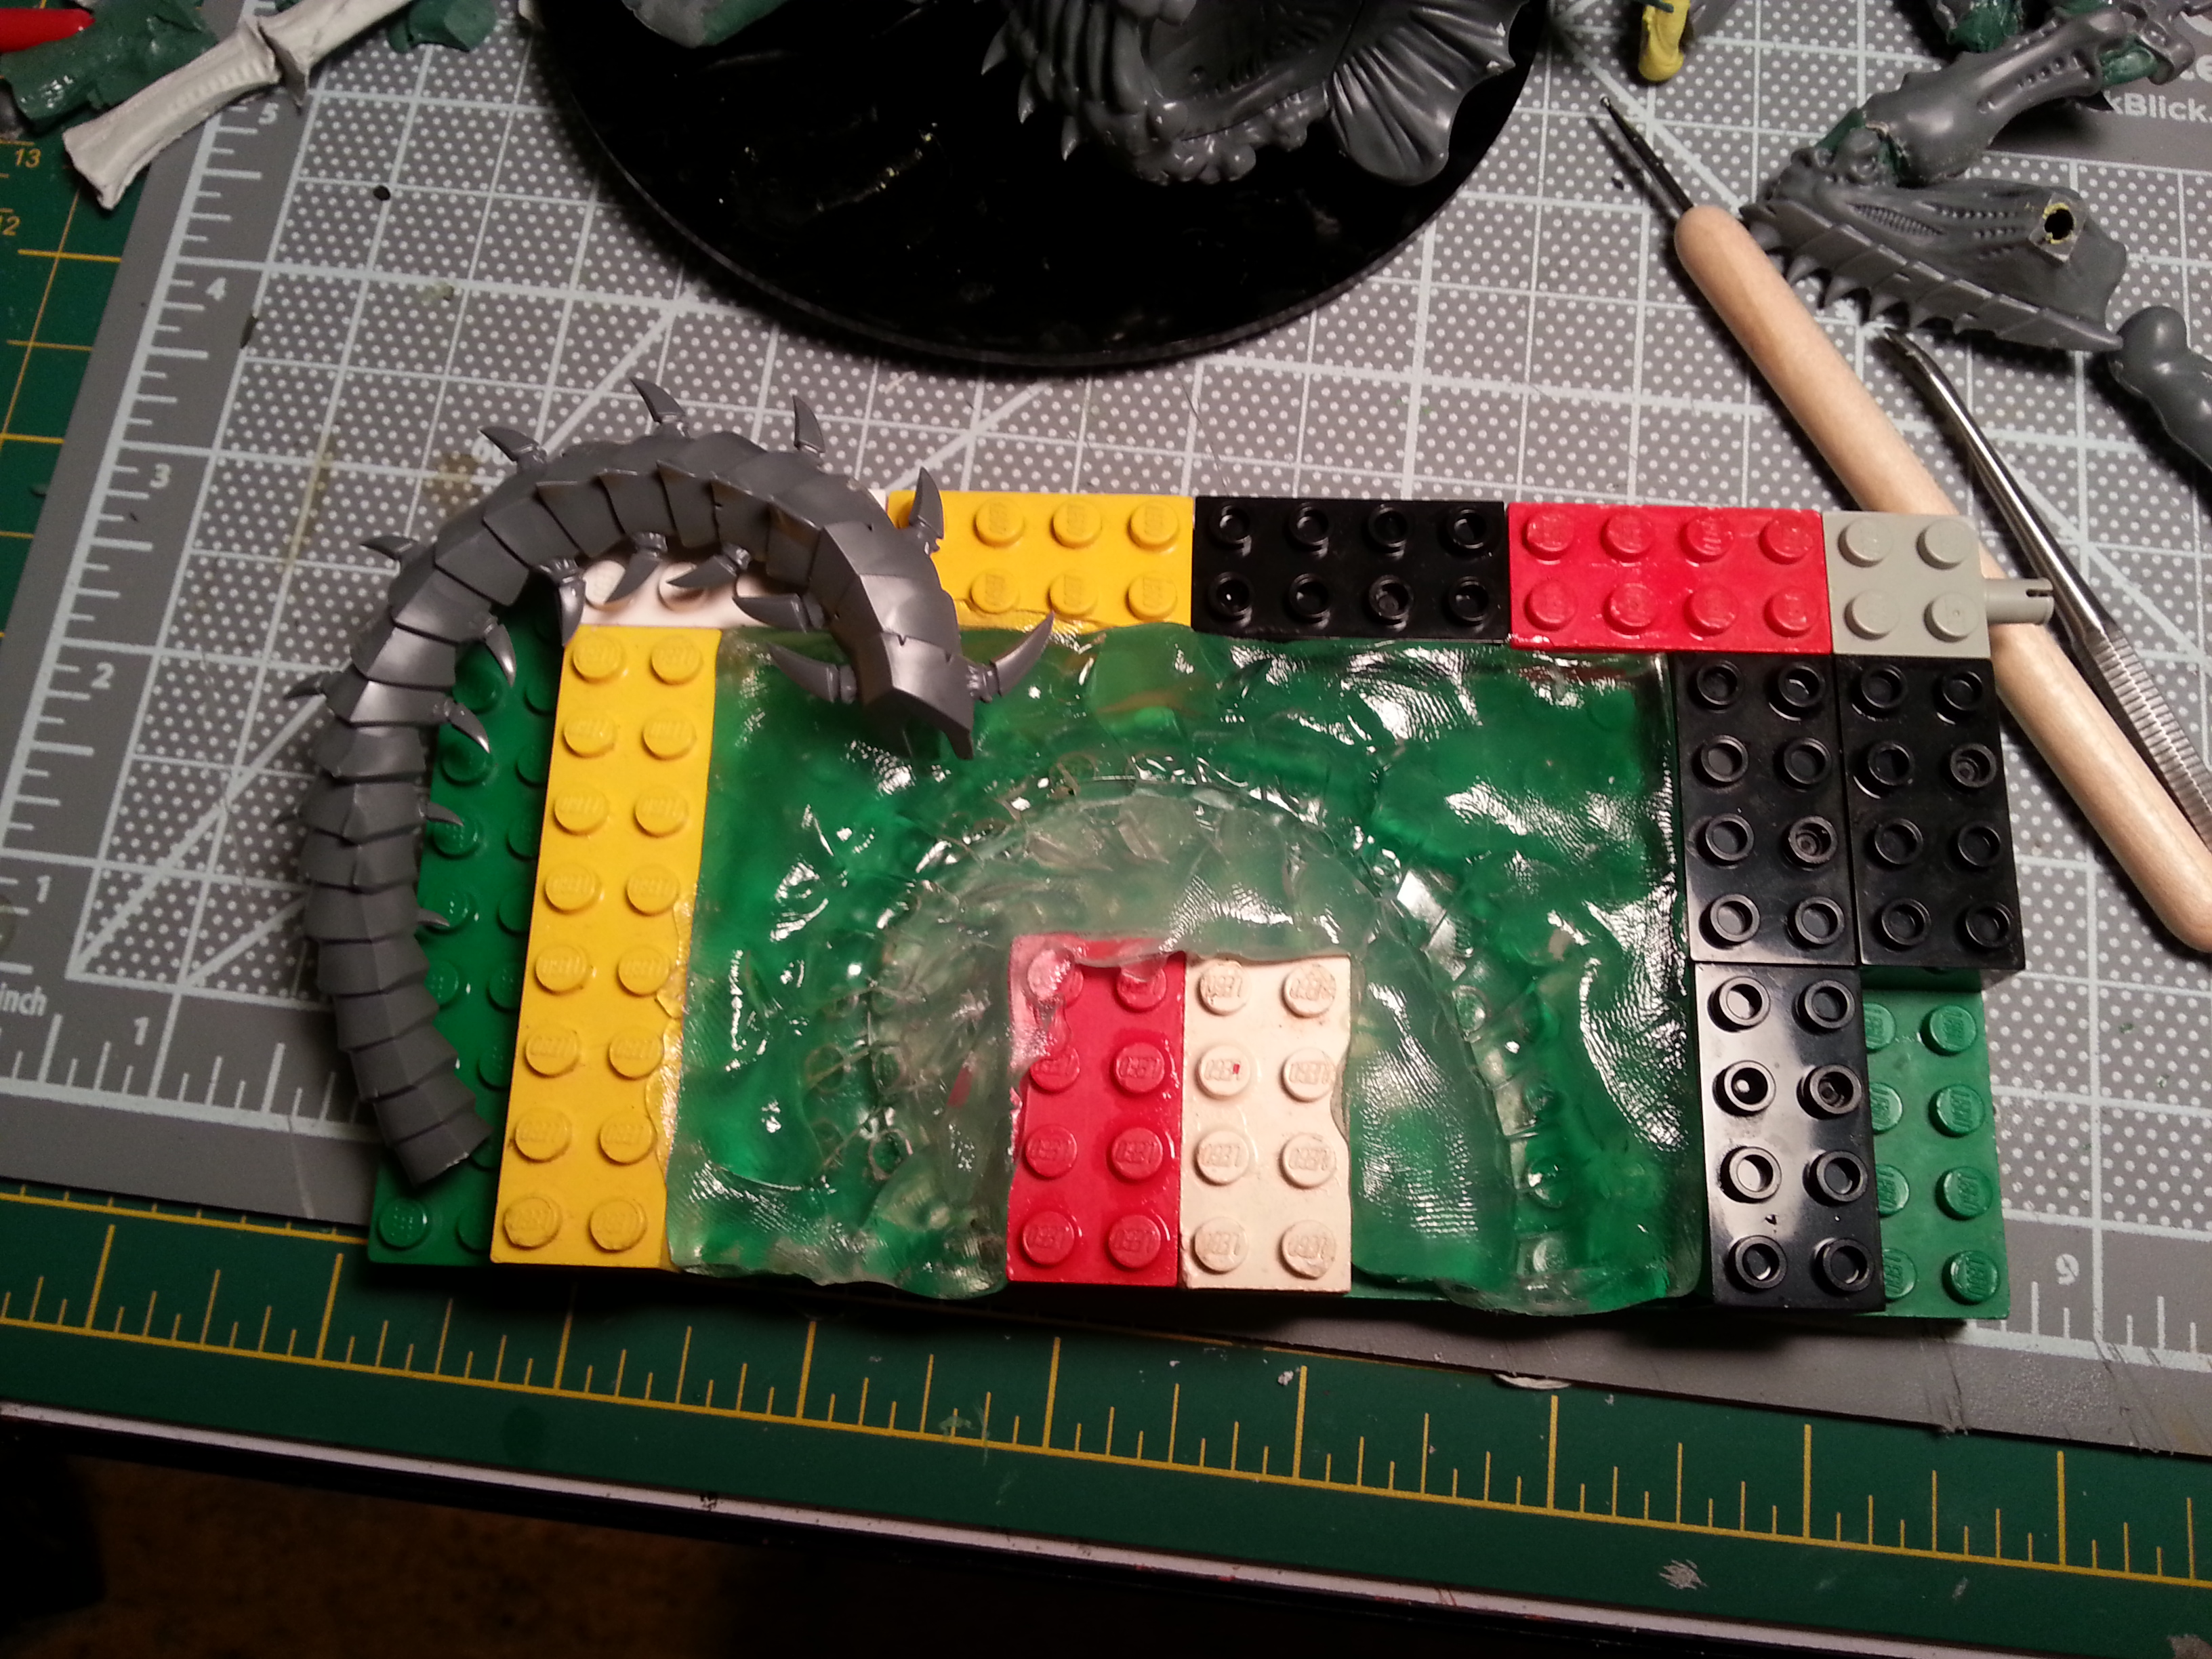 Barbie Step 8 - For this, I did a one-piece open mold. The trygon tail didn